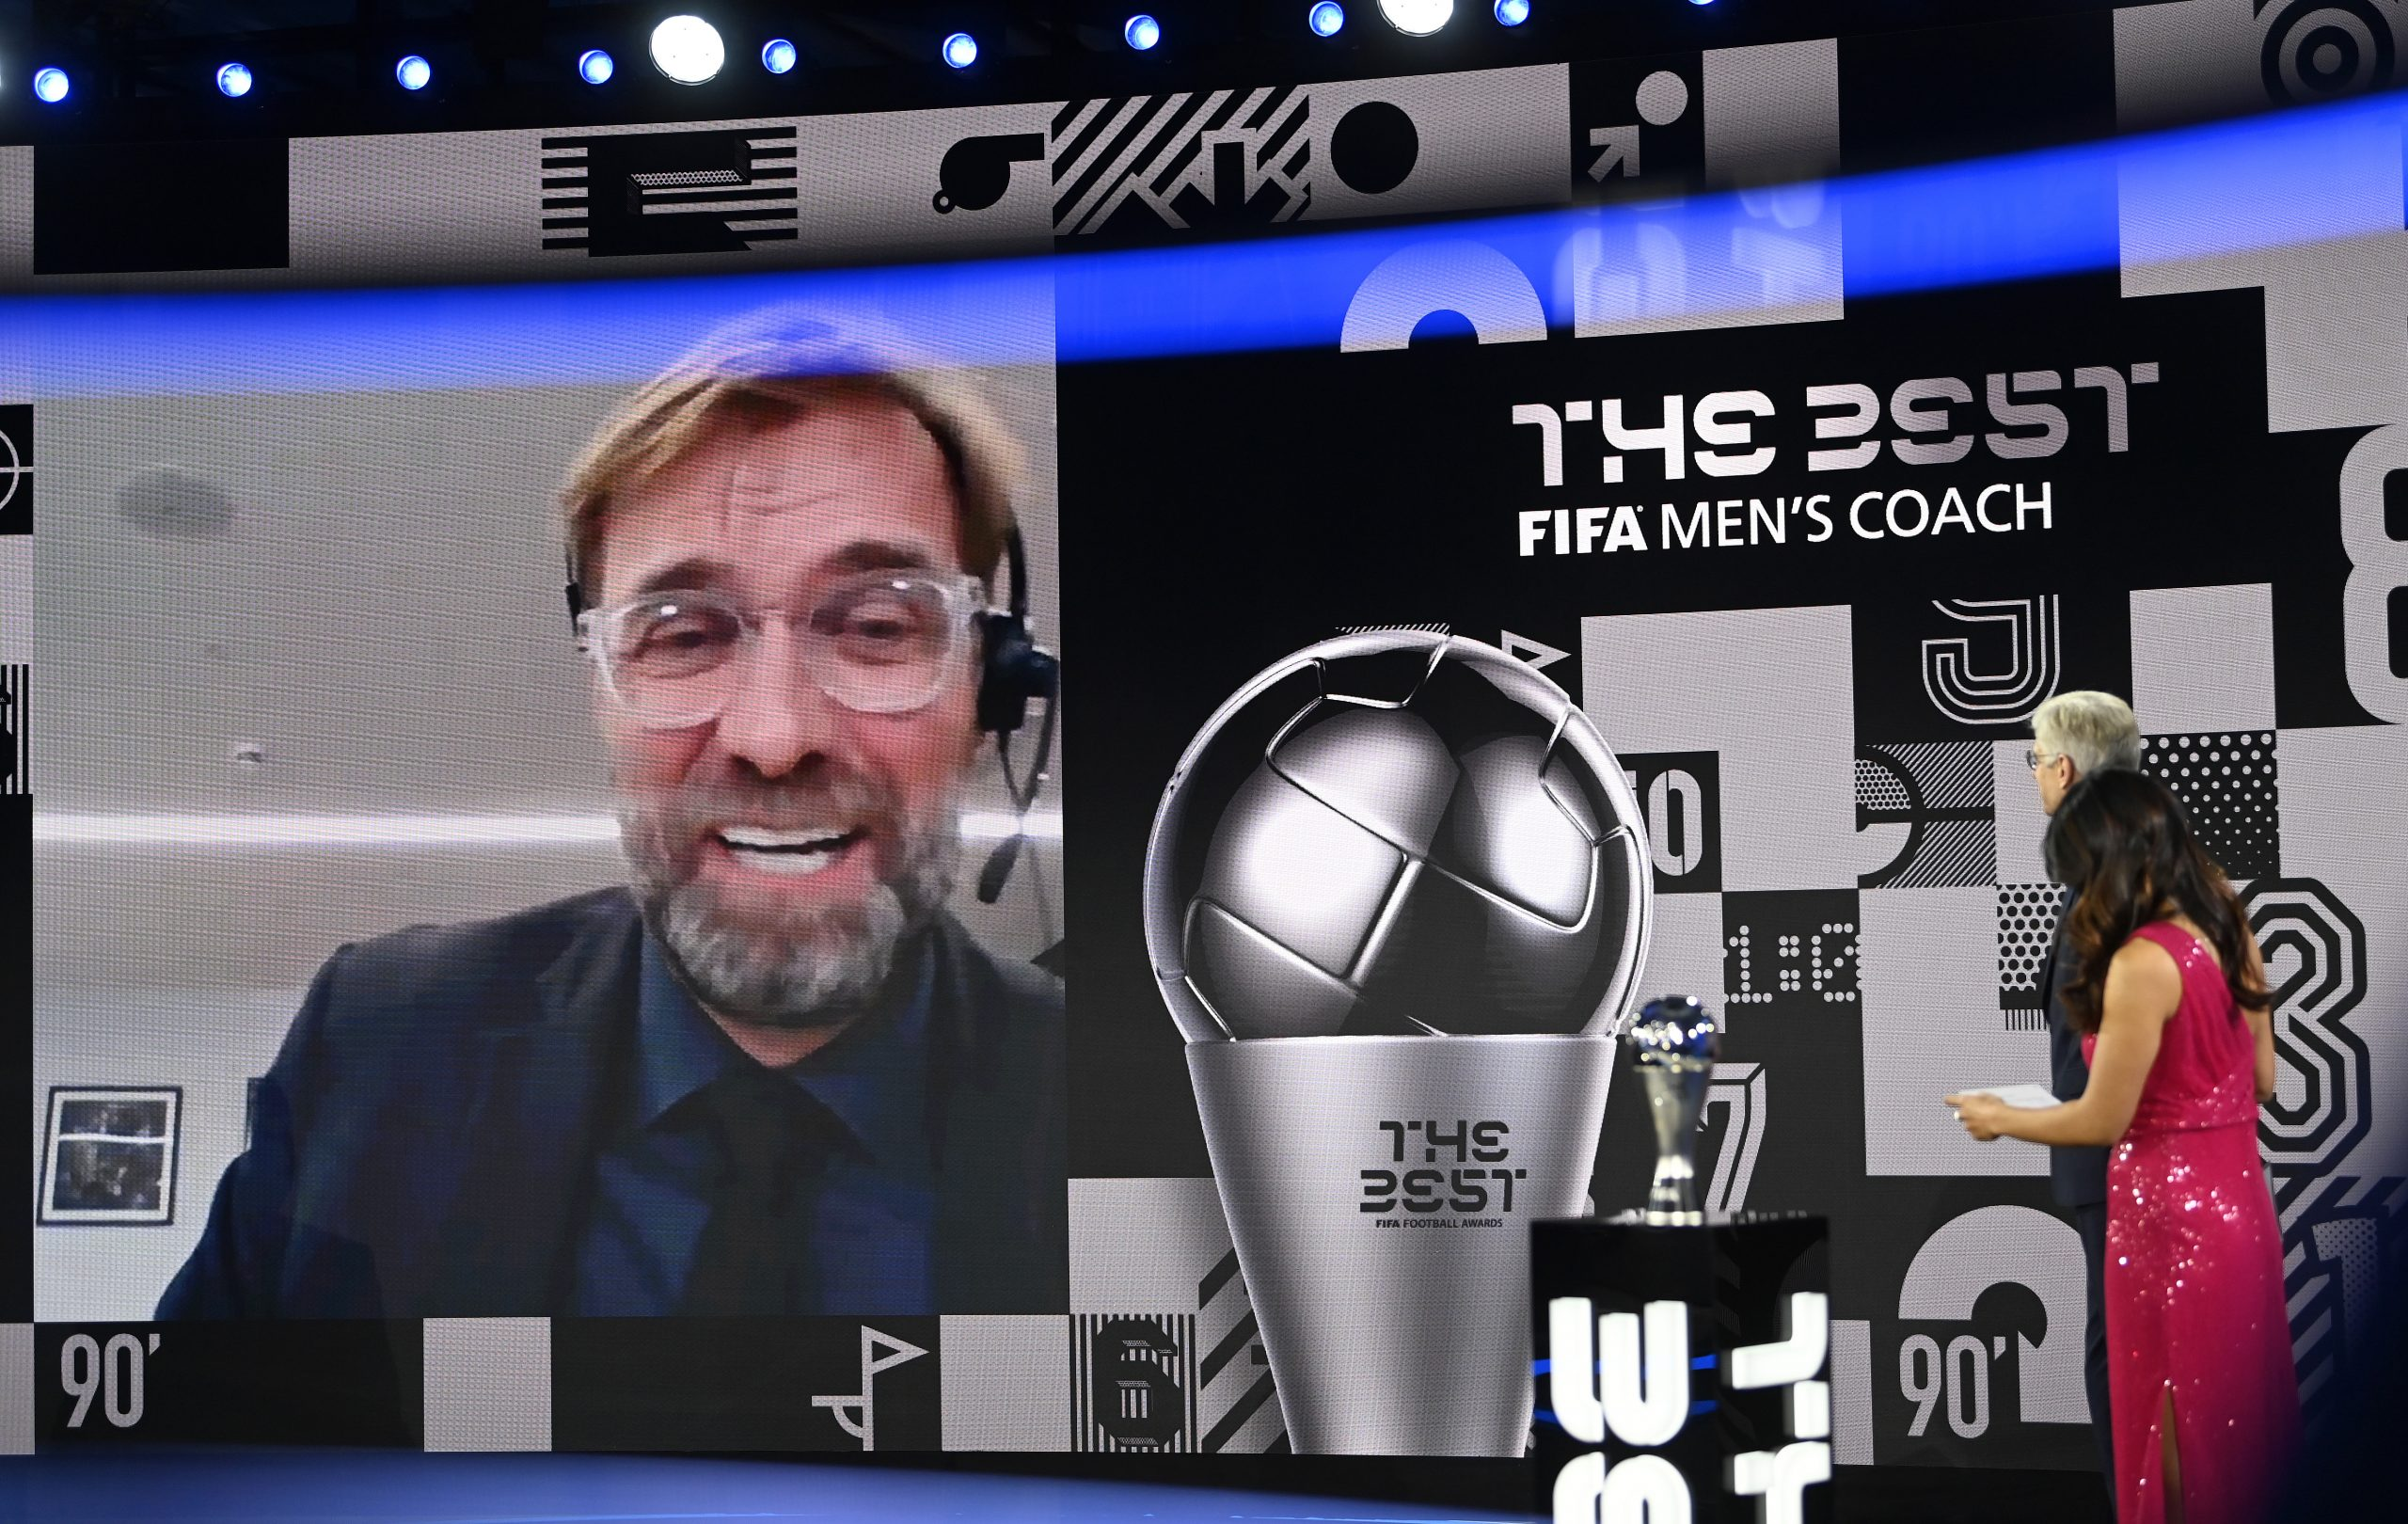 Jurgen Klopp accepts his men's coach of the year award at the the FIFA Best Awards on Thursday. (GETTY Images)